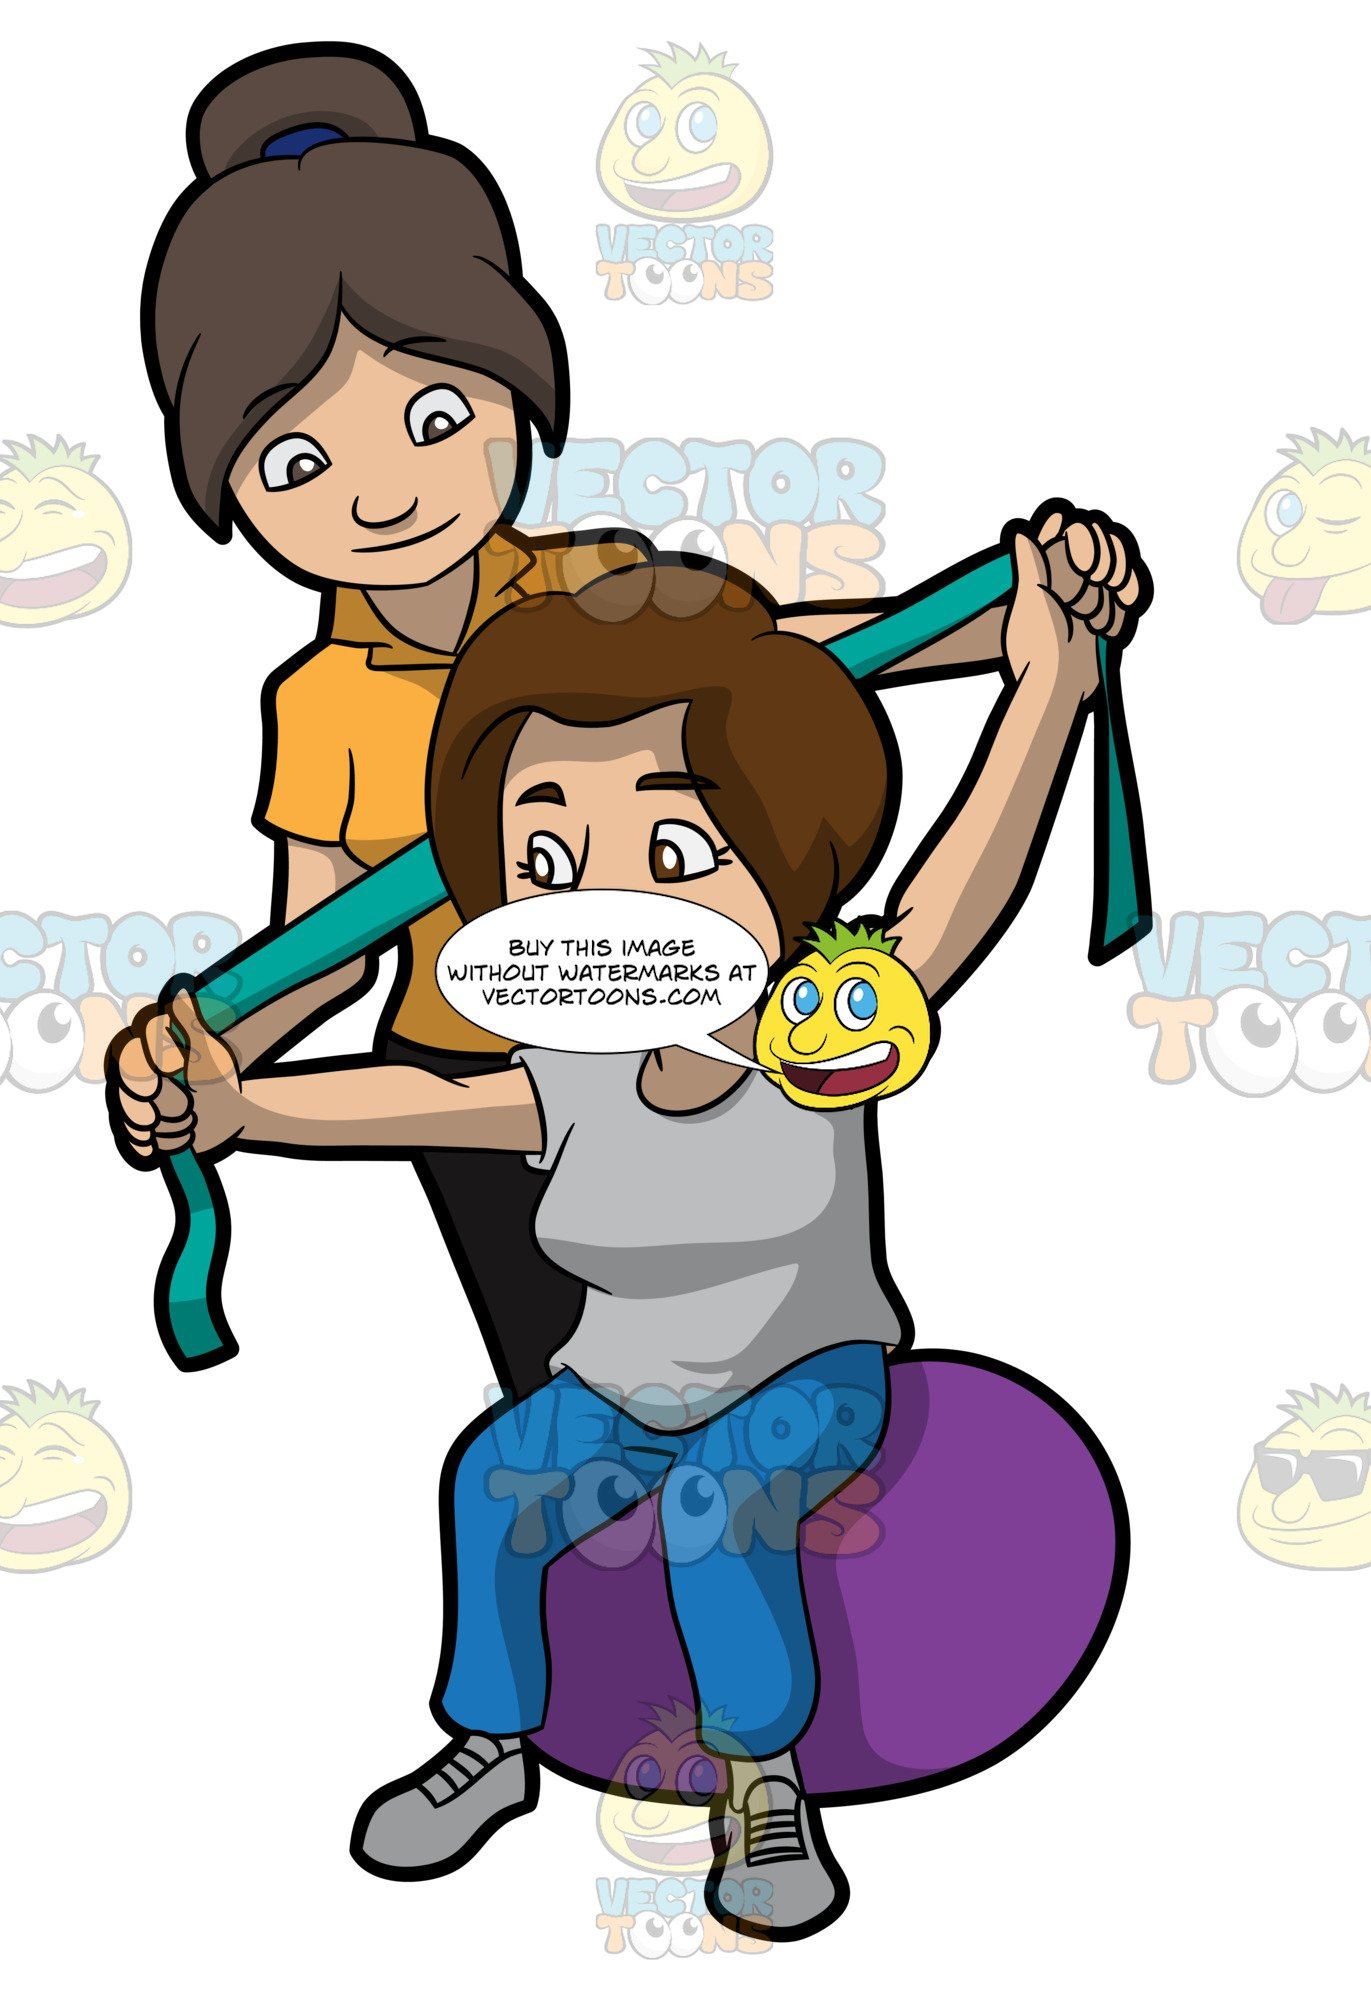 Clipart of psychologist woman with woman patient clipart black and white stock A Female Physical Therapist Helping A Patient Stretch Her Arms clipart black and white stock